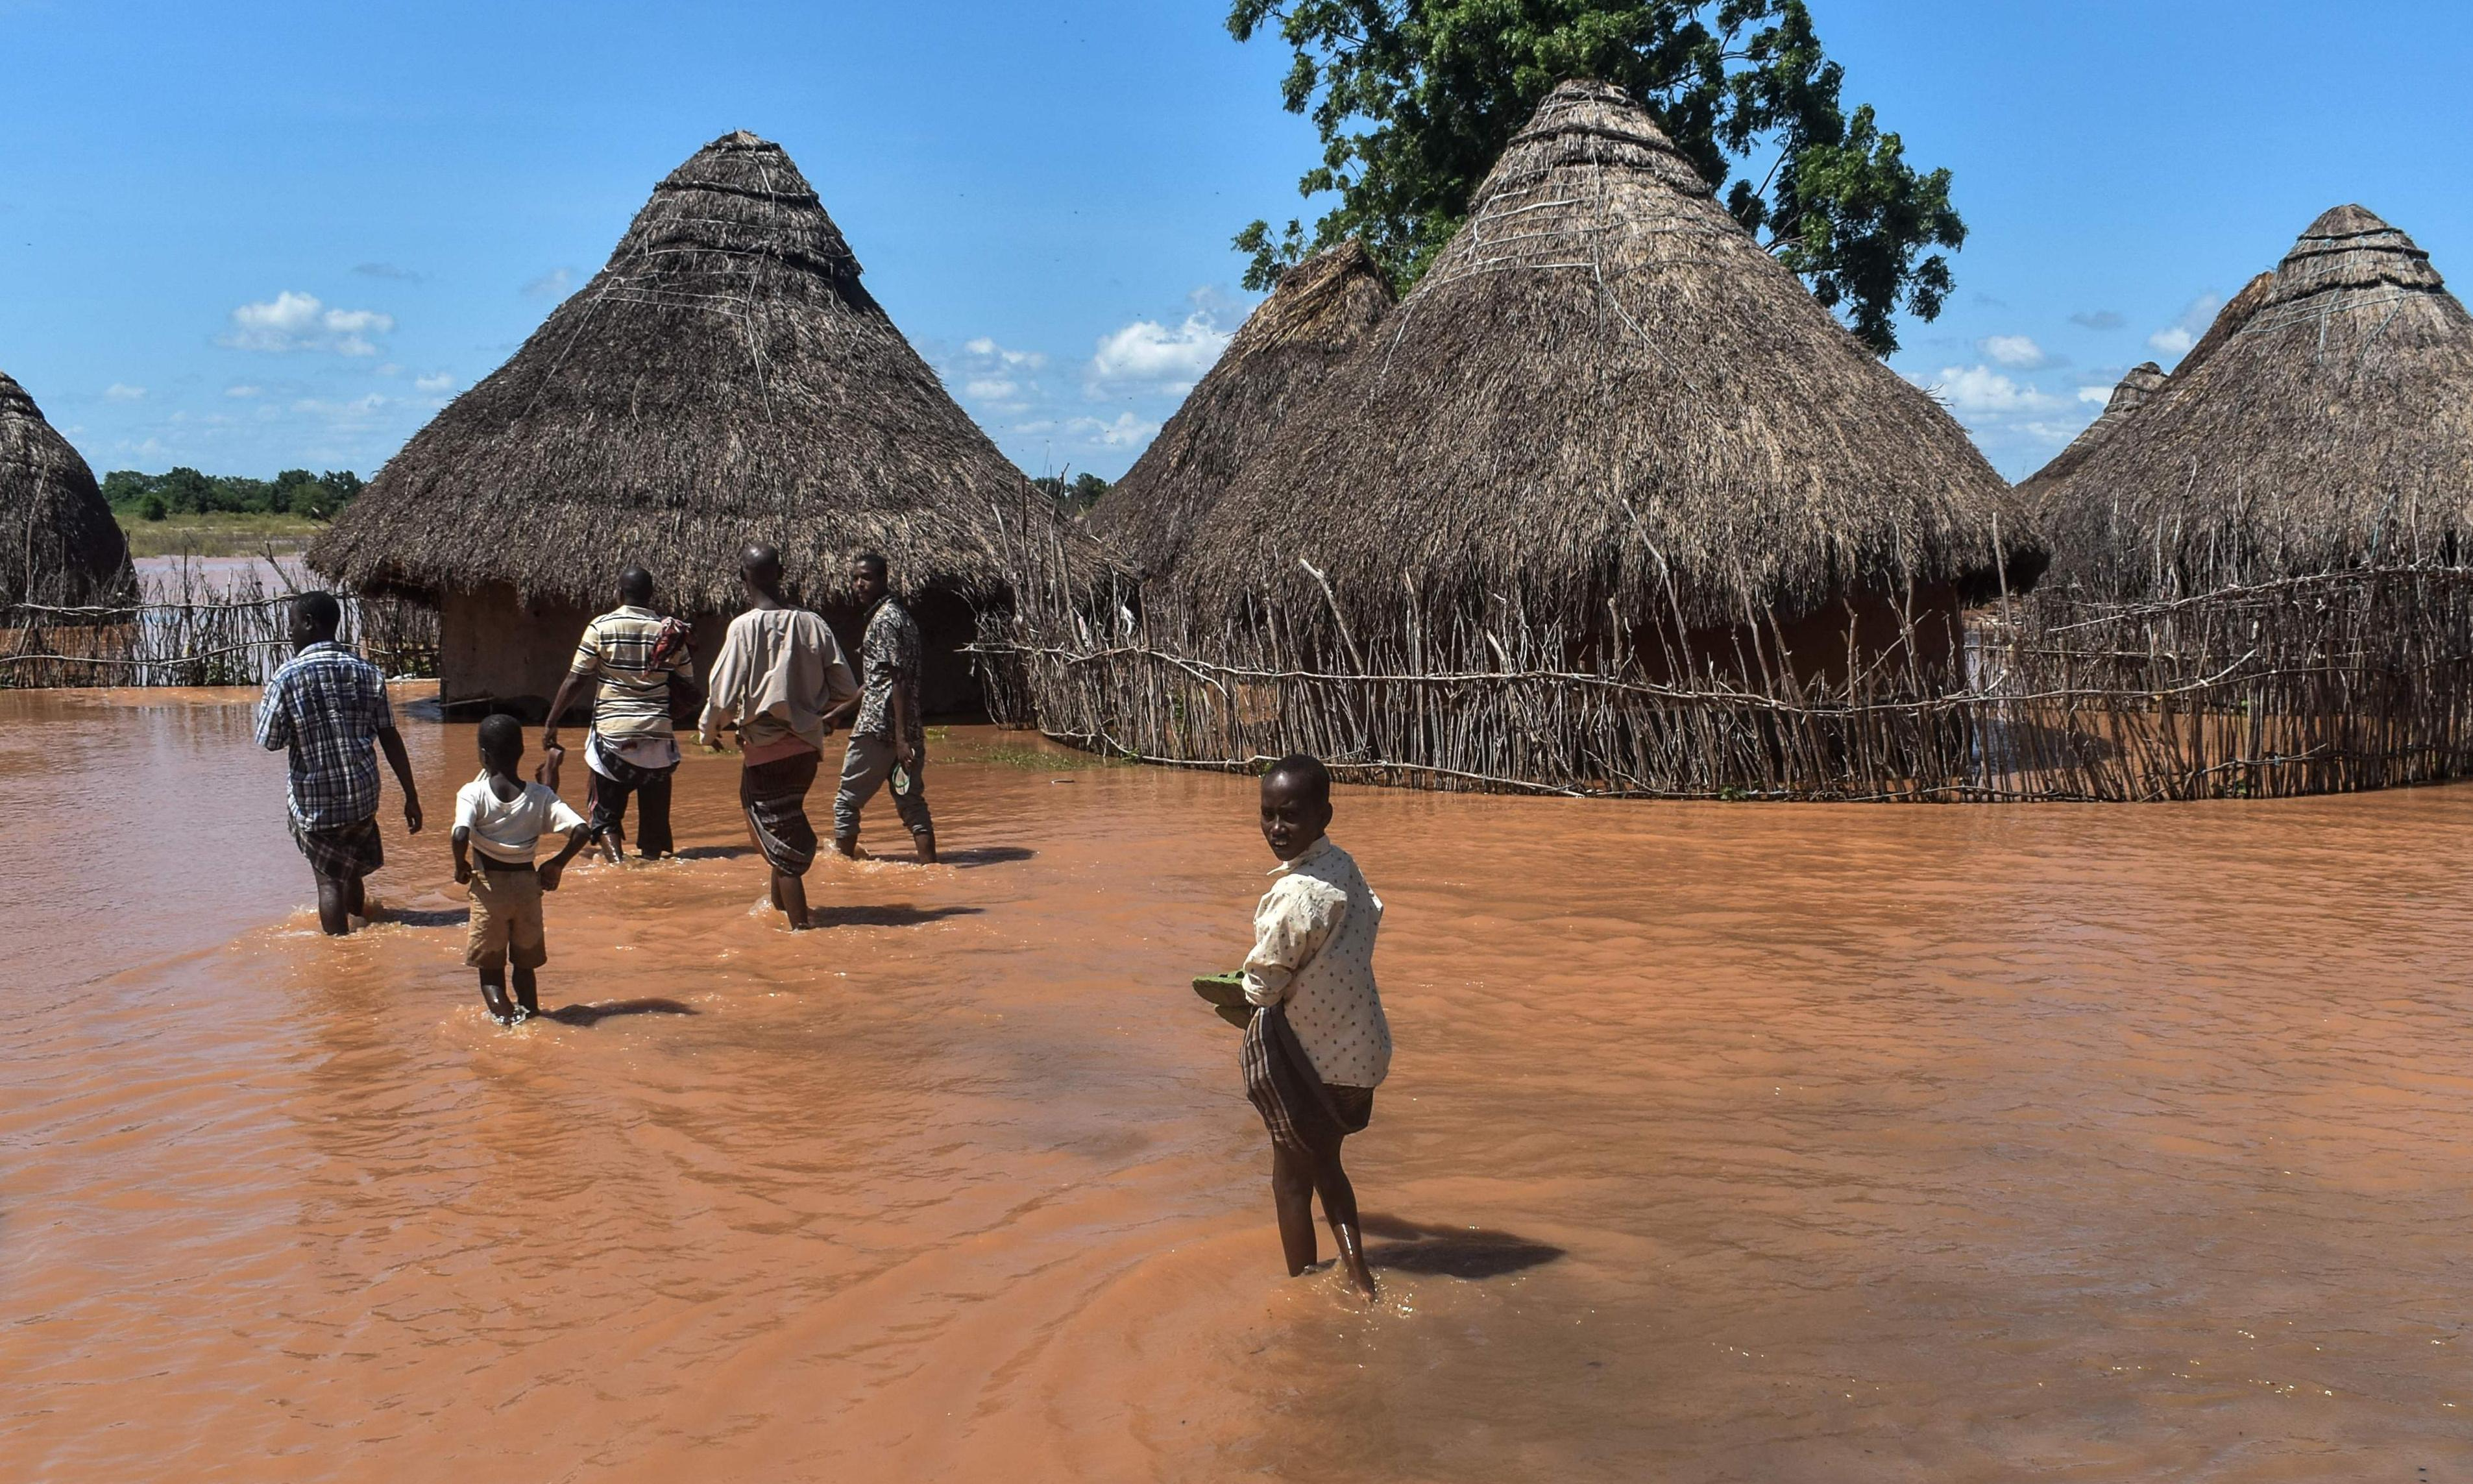 Global heating to inflict more droughts on Africa as well as floods